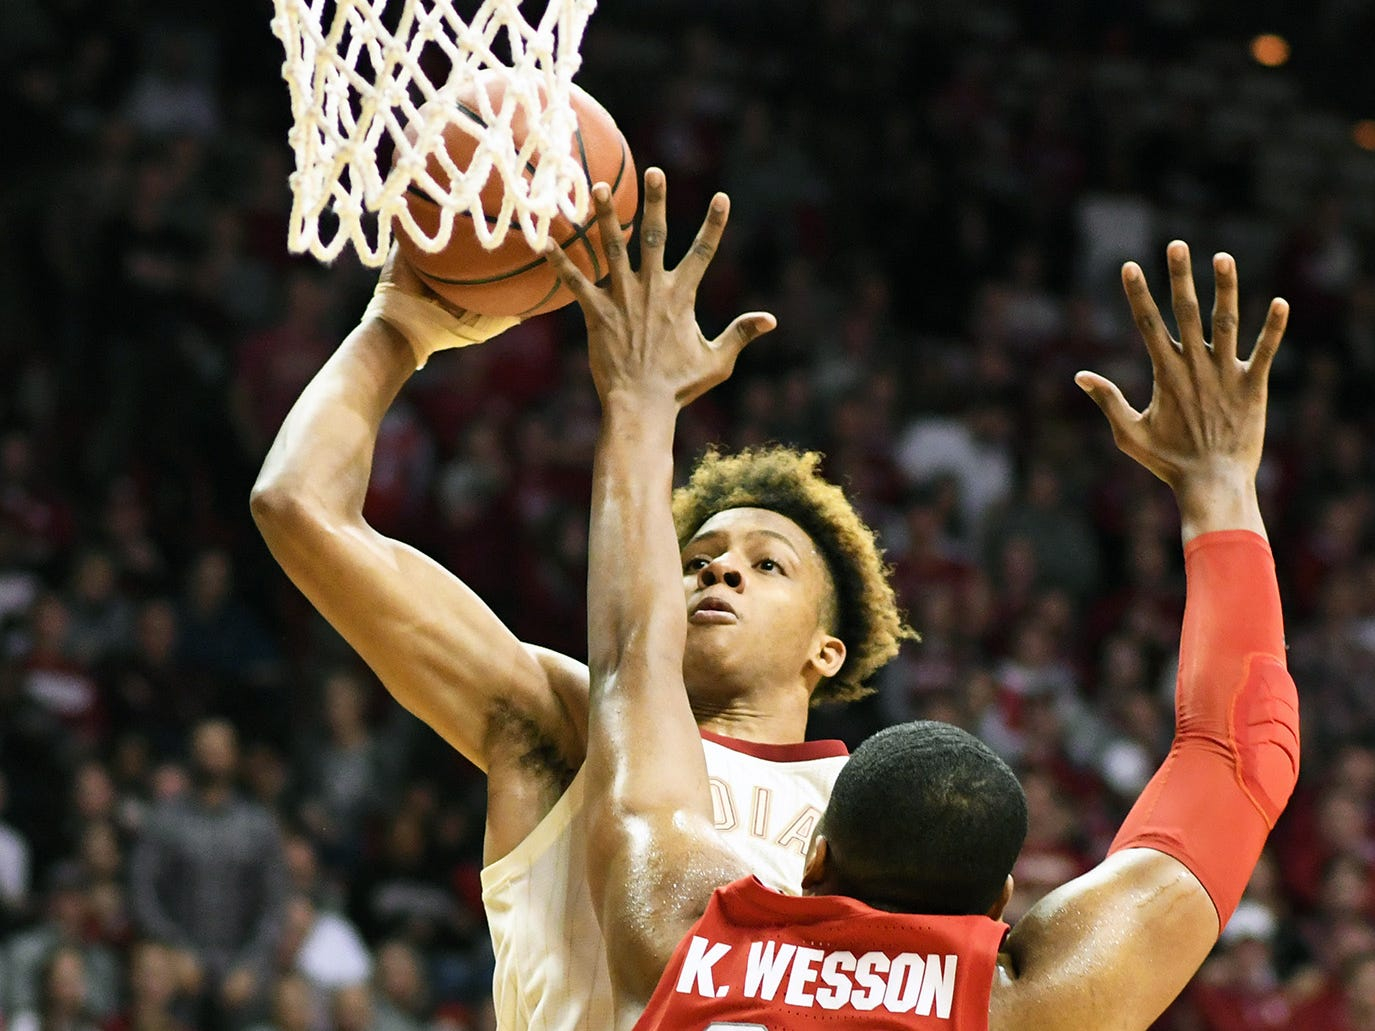 Indiana Hoosiers guard Romeo Langford (0) goes up for a dunk during the game against Ohio State at Simon Skjodt Assembly Hall in Bloomington Ind., on Sunday, Feb. 10, 2019.